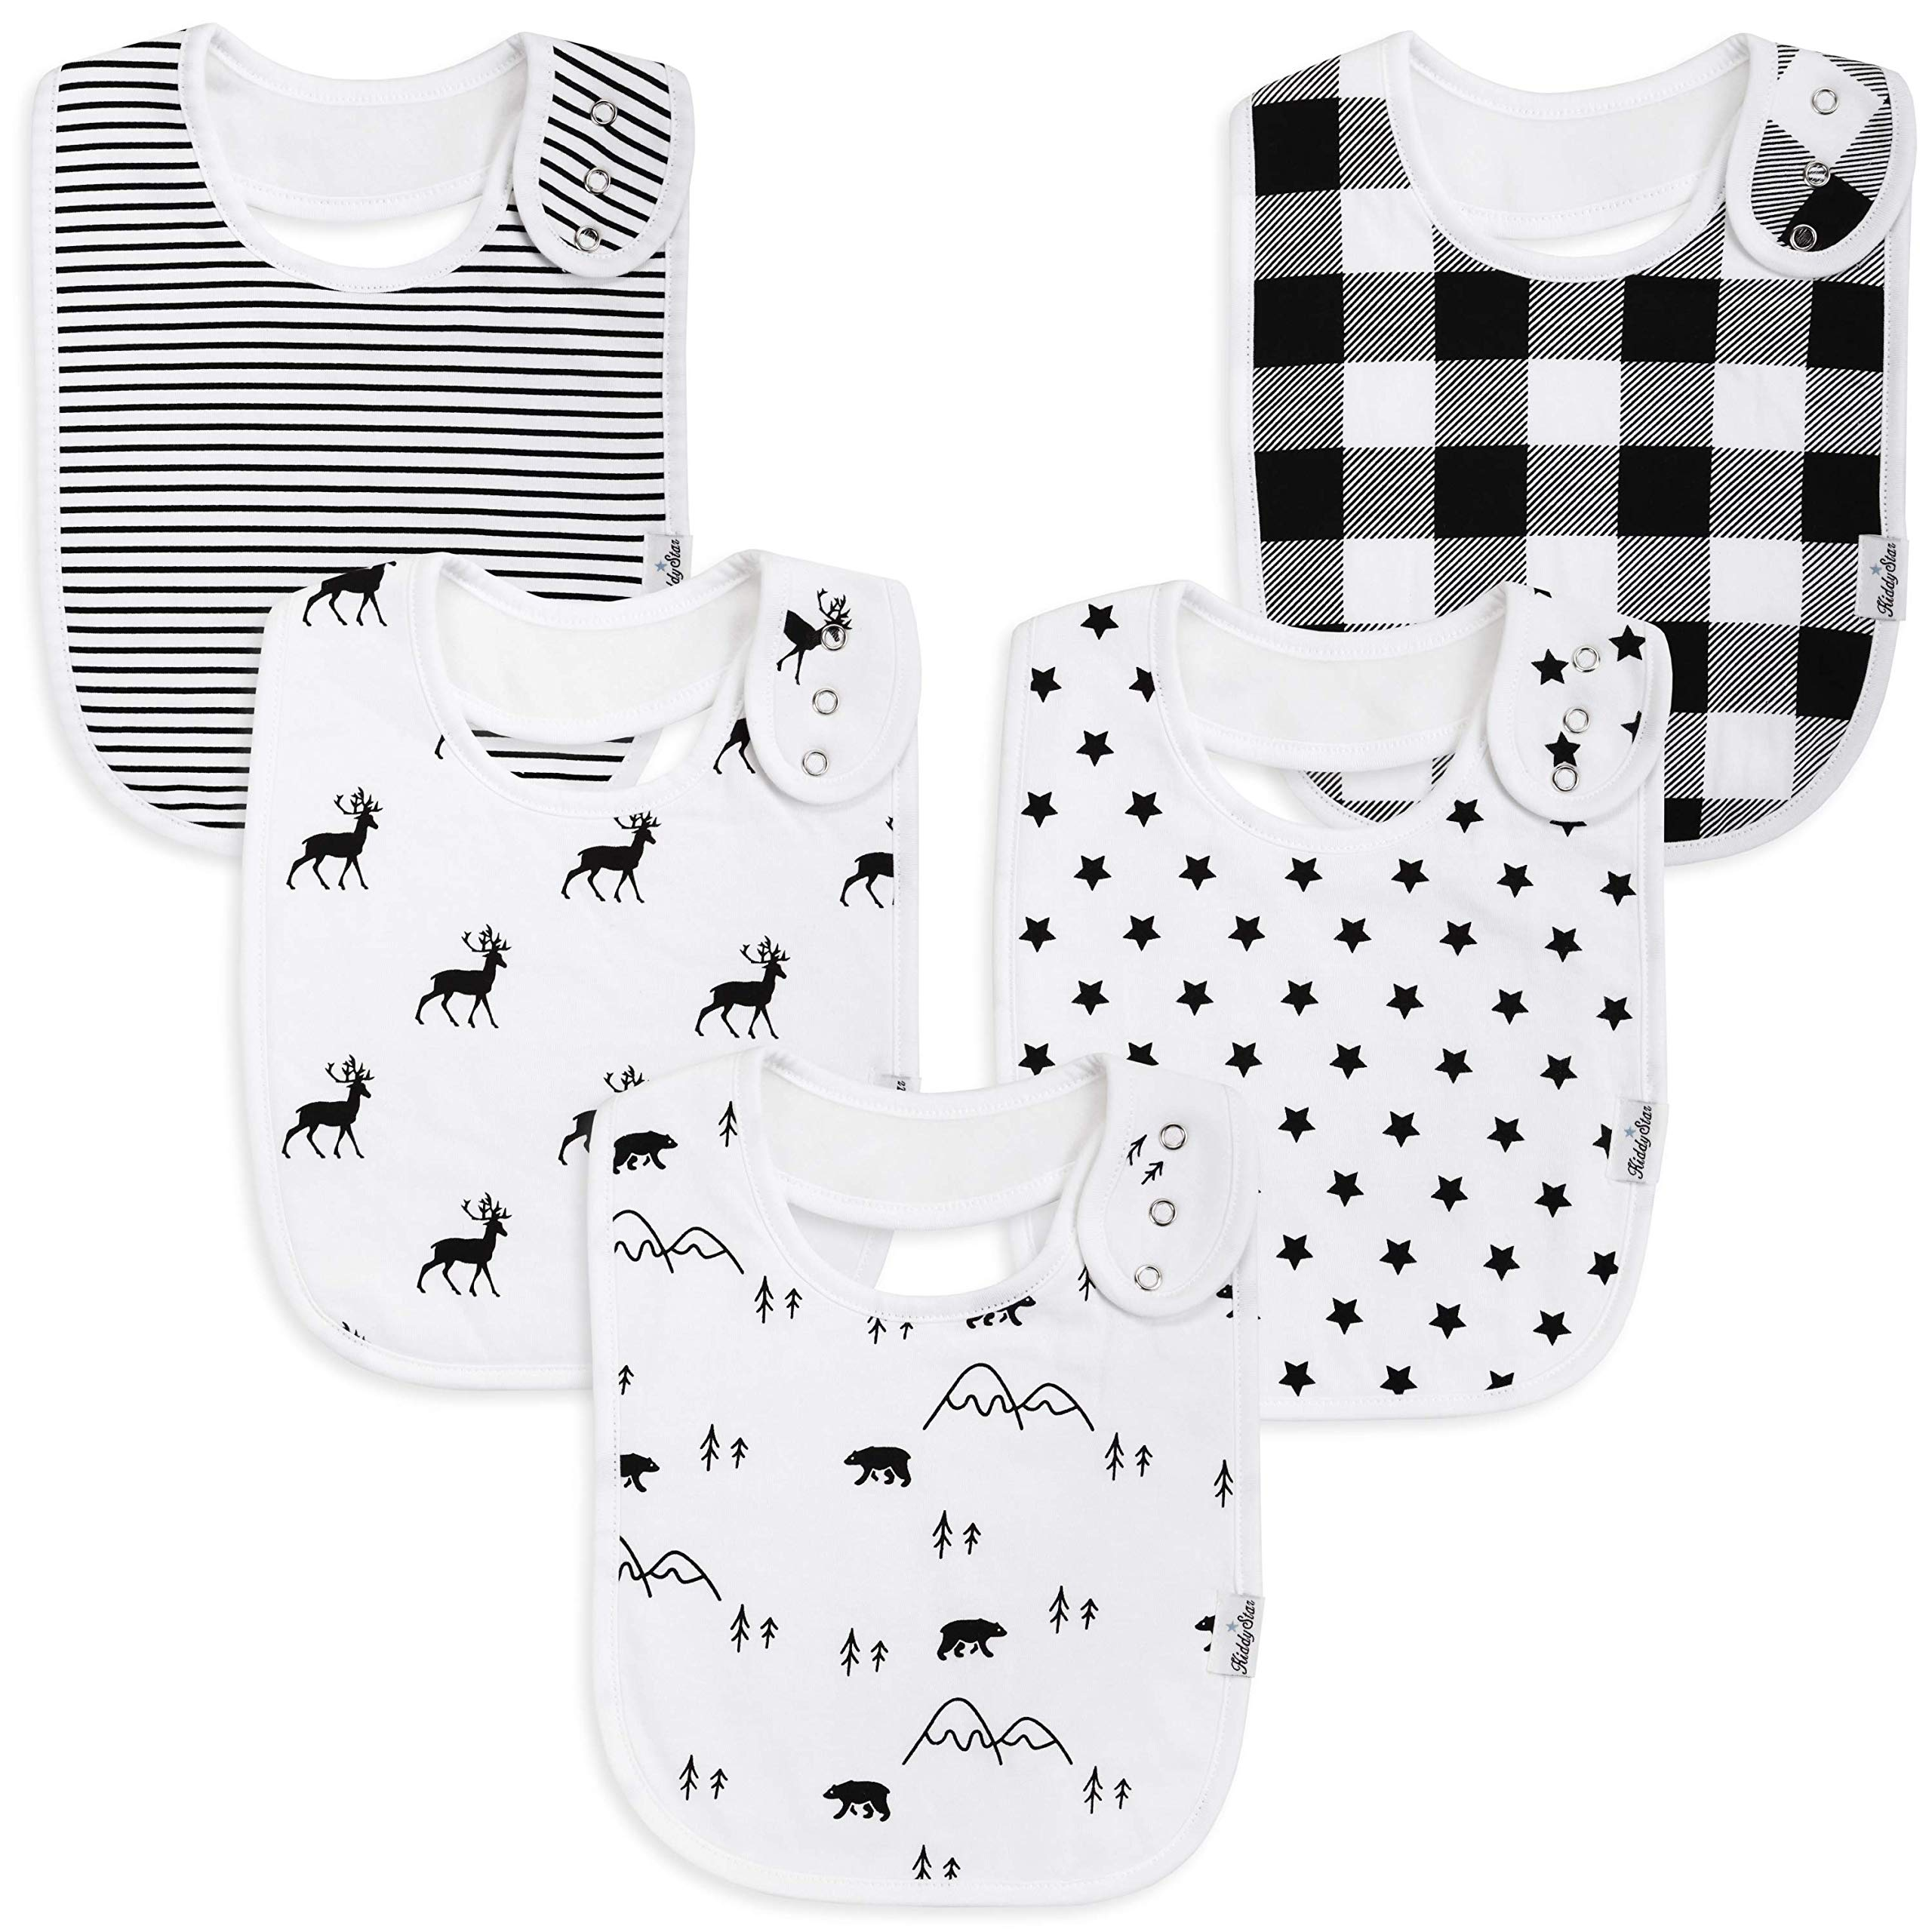 Premium, Organic Cotton Toddler Bibs, Unisex 5-Pack Extra Large Baby Bibs for Boys and Girls by KiddyStar, Baby Shower Gift for Feeding, Drooling, Teething, Adjustable 5 Positions (Bears & Reindeer) by KiddyStar